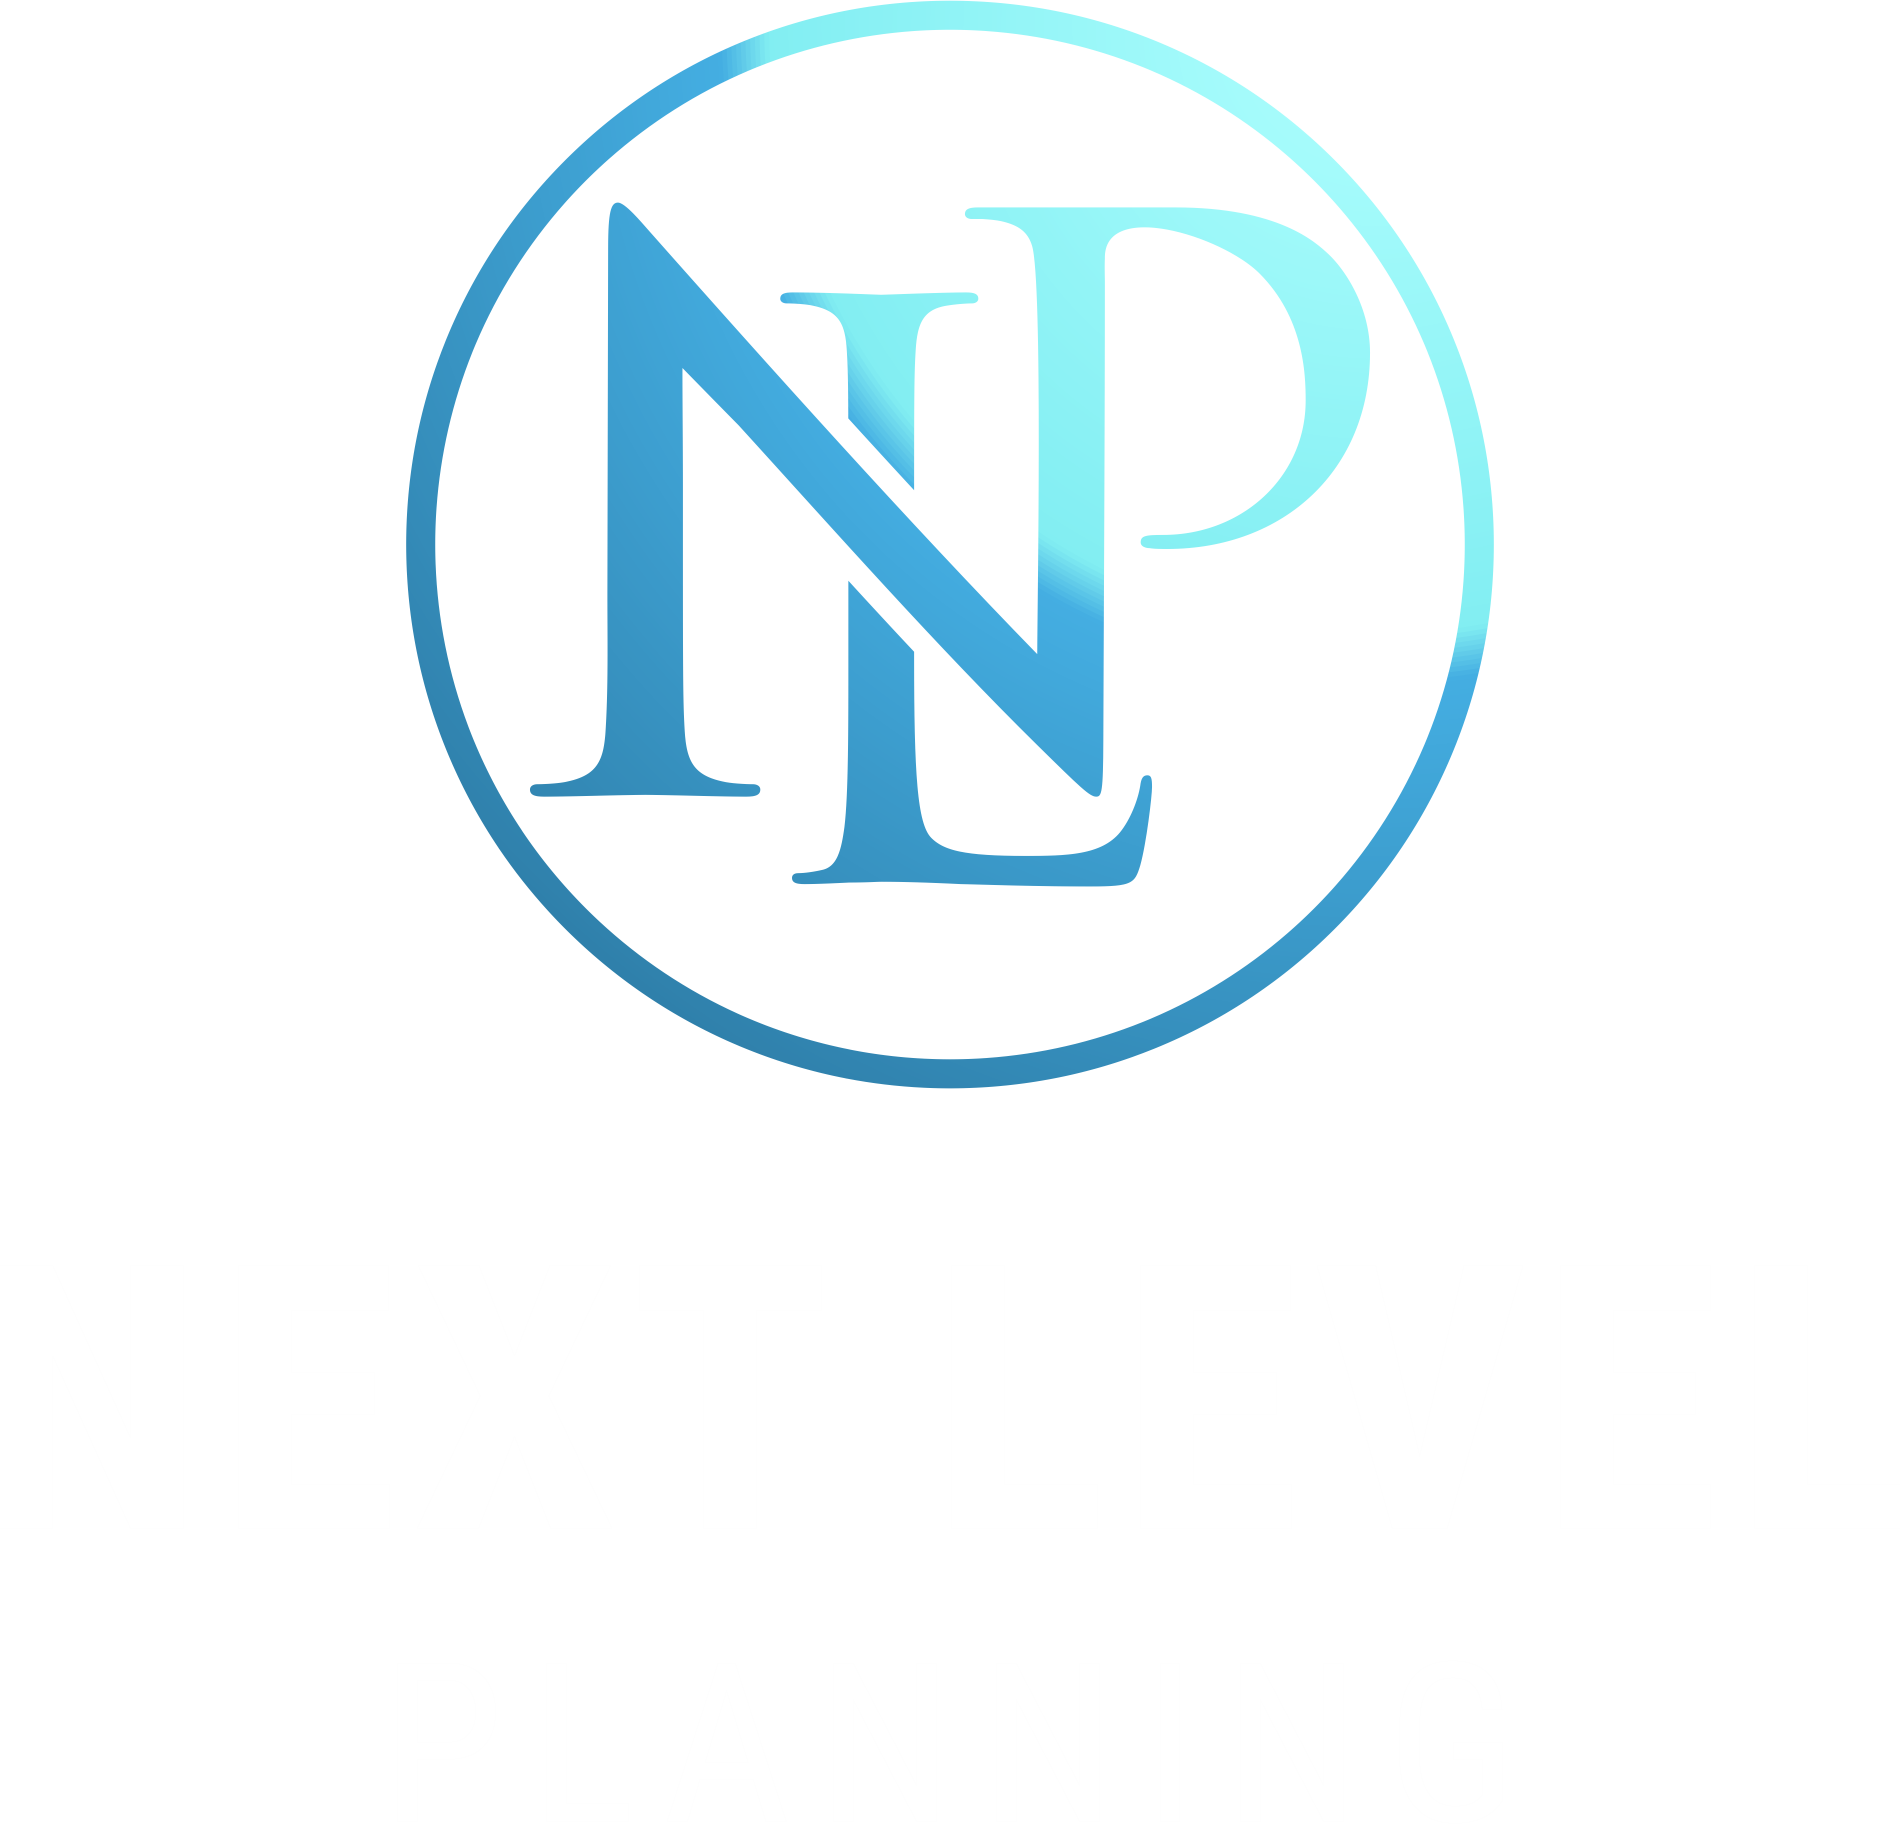 We need a sharp, powerful logo for our financial planning firm. Would love a background with our logo as well.